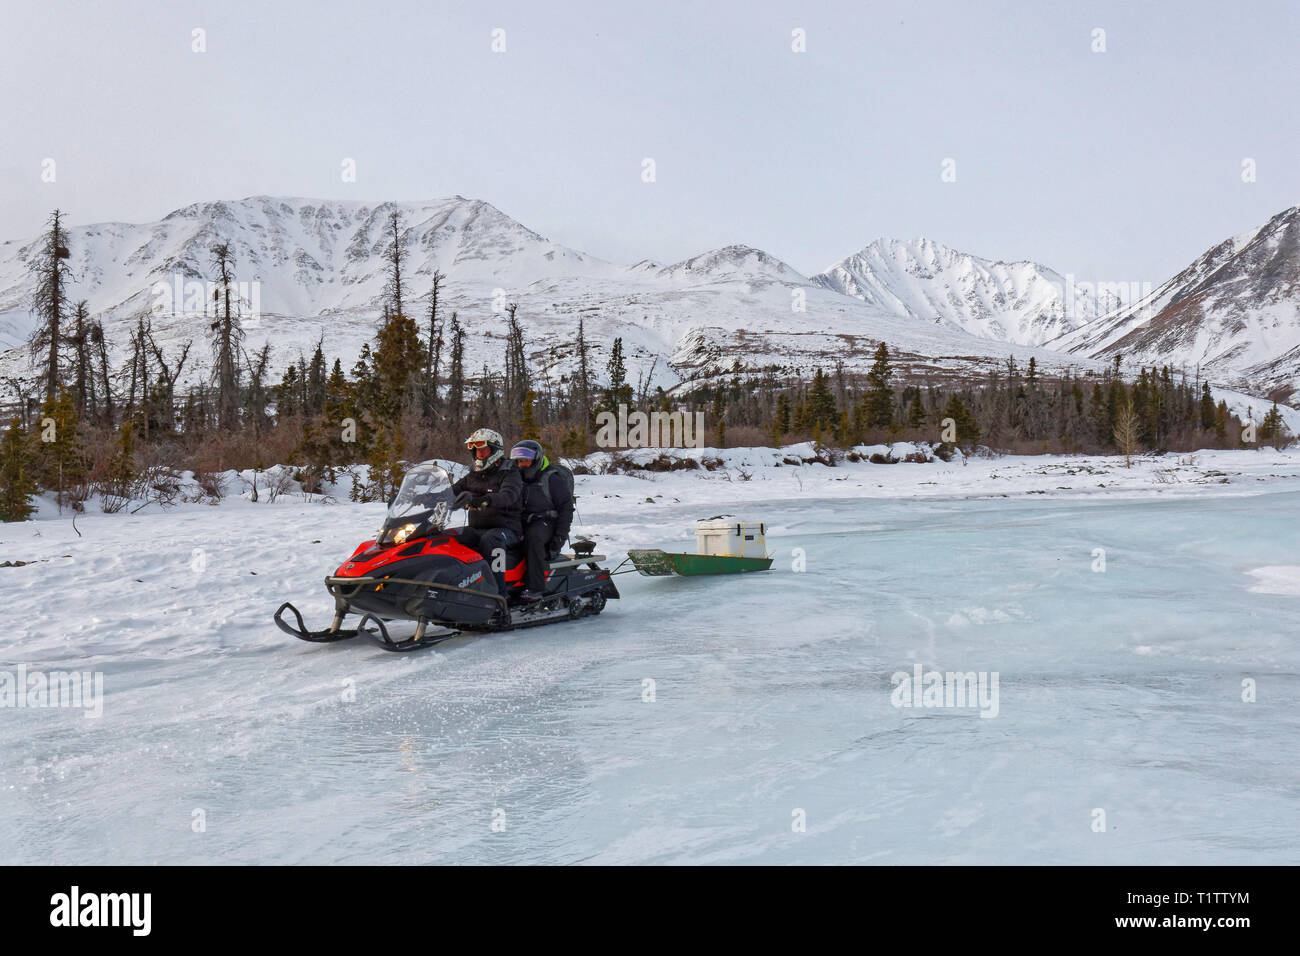 HAINES JUNCTION, YUKON, CANADA, March 12, 2019 : Journey are organized on icefields with snowmobiles. - Stock Image